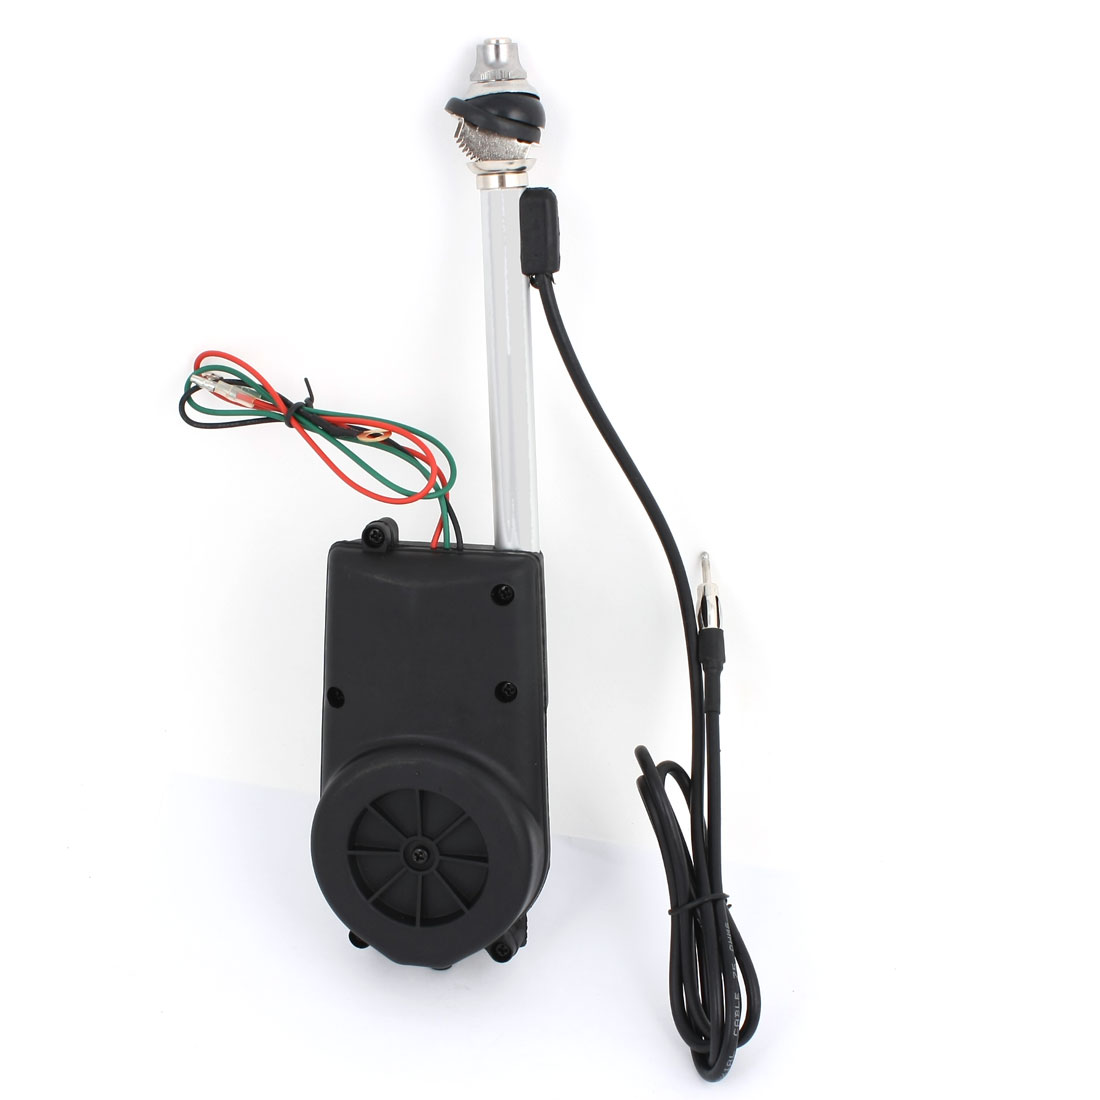 DC 12V Universal AM FM Radio Electric Automatic Antenna Black BF-686